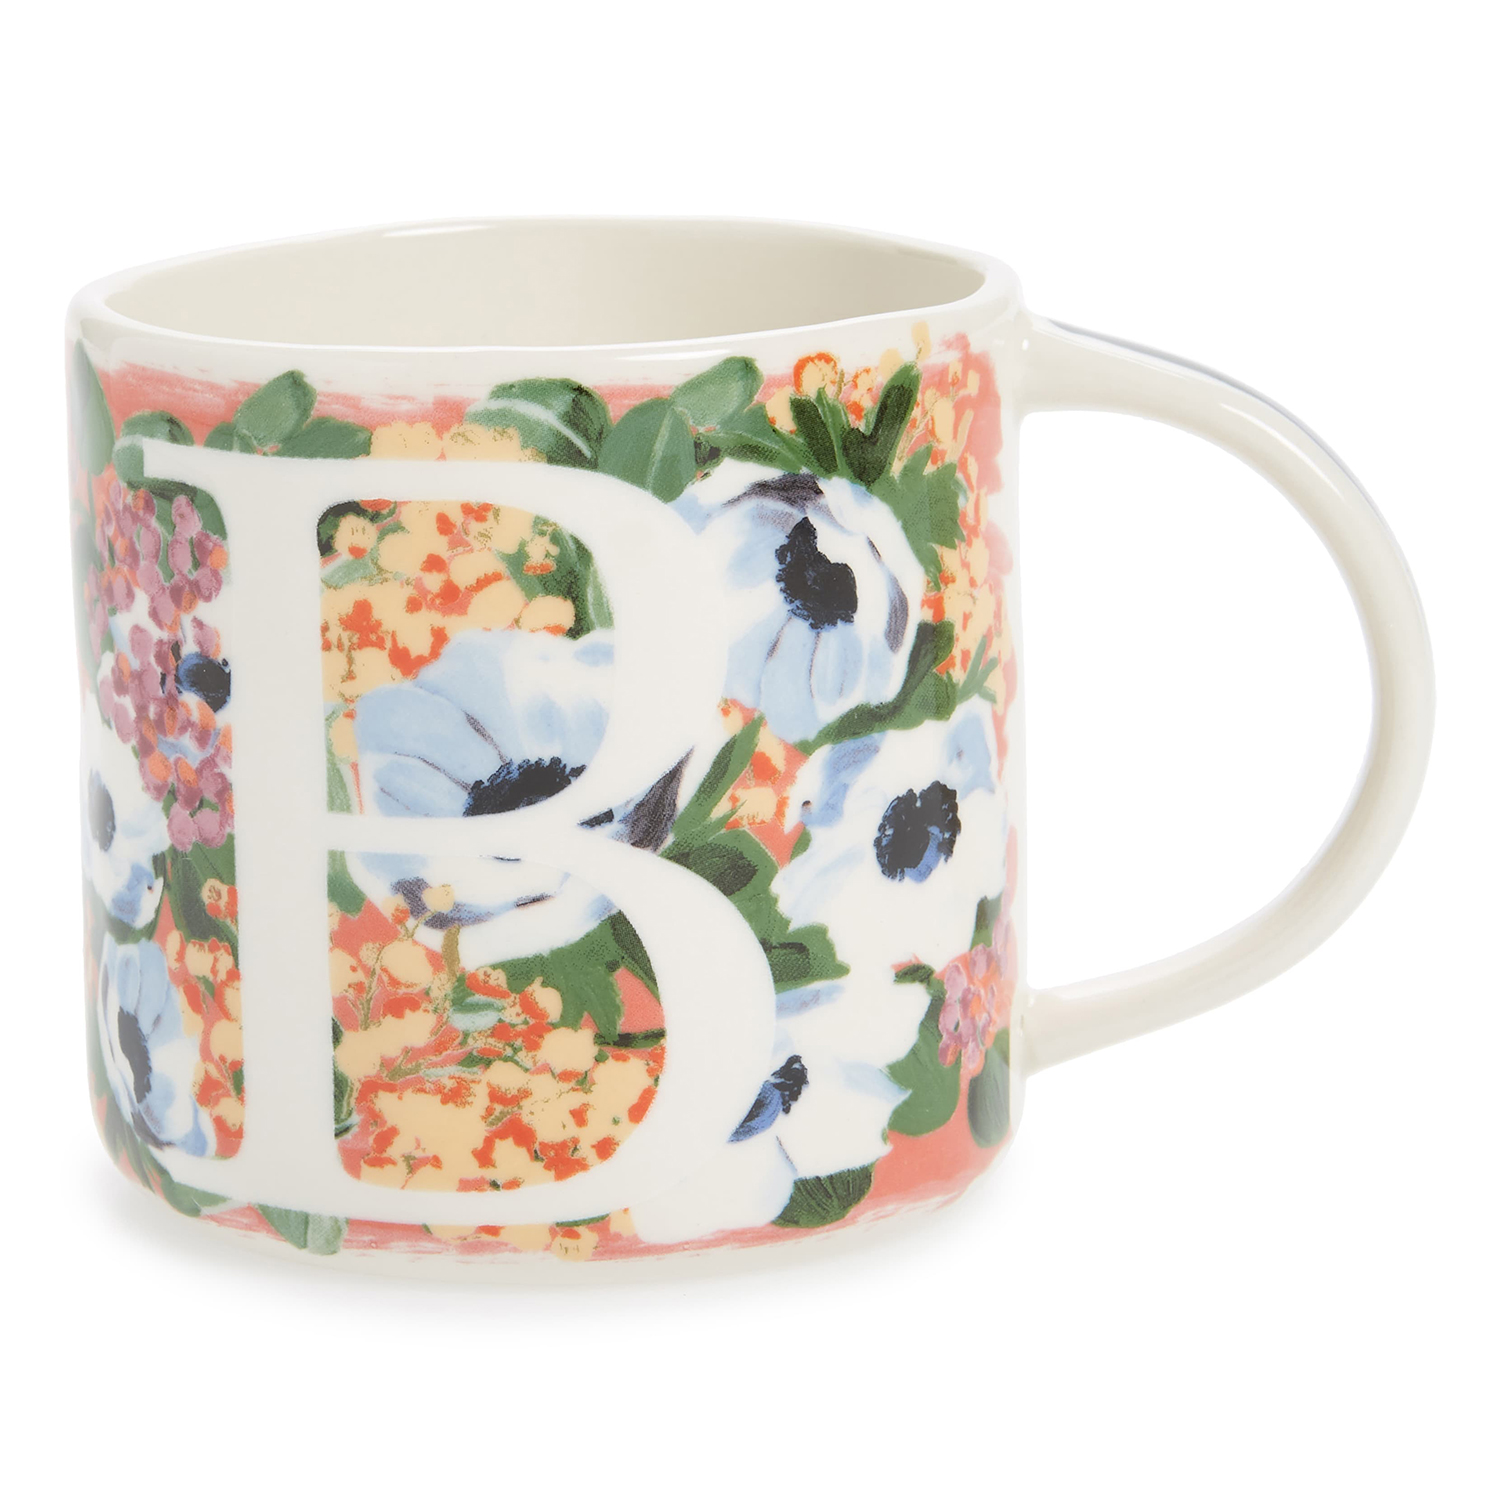 Anthropologie Home Dawn Monogram Mug